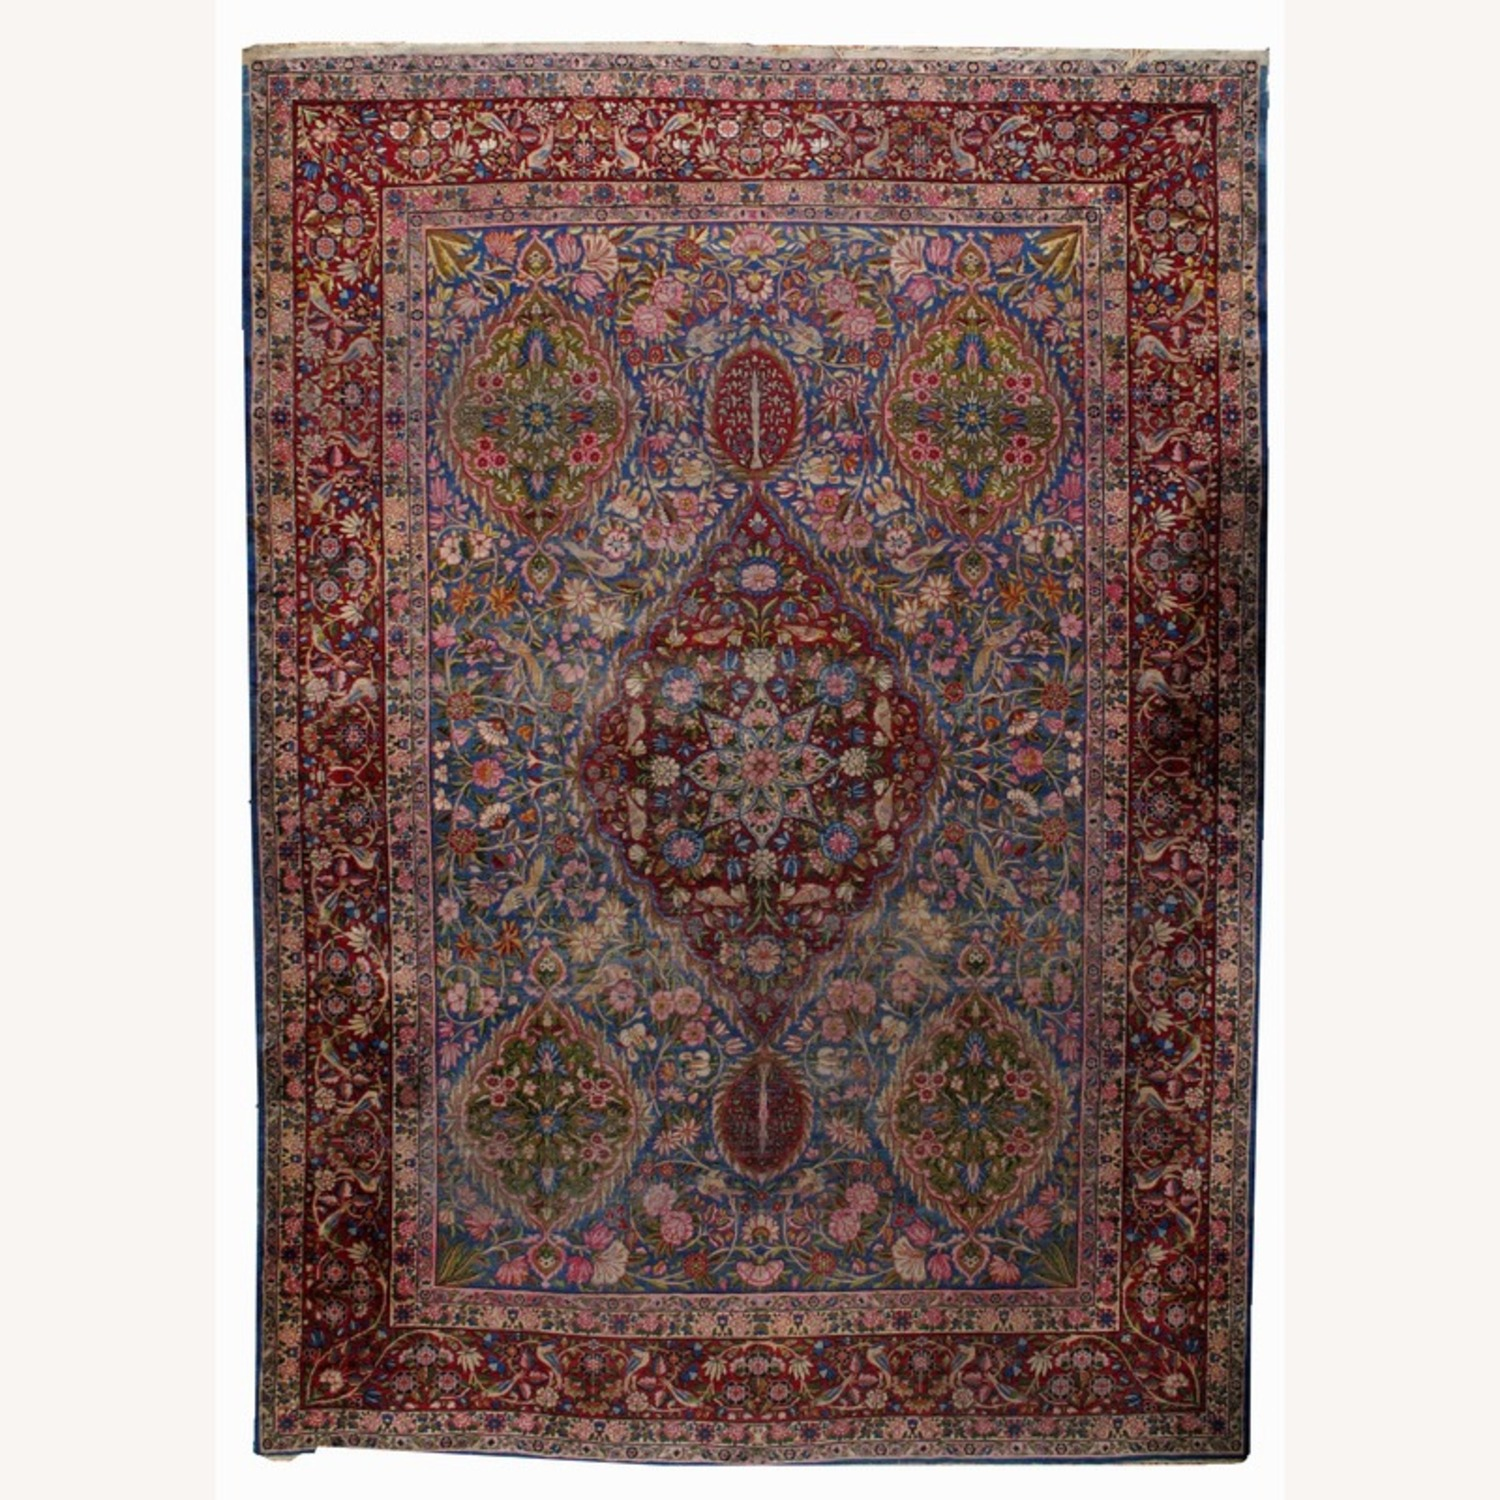 Hand made Antique Persian Yazd Rug - image-1